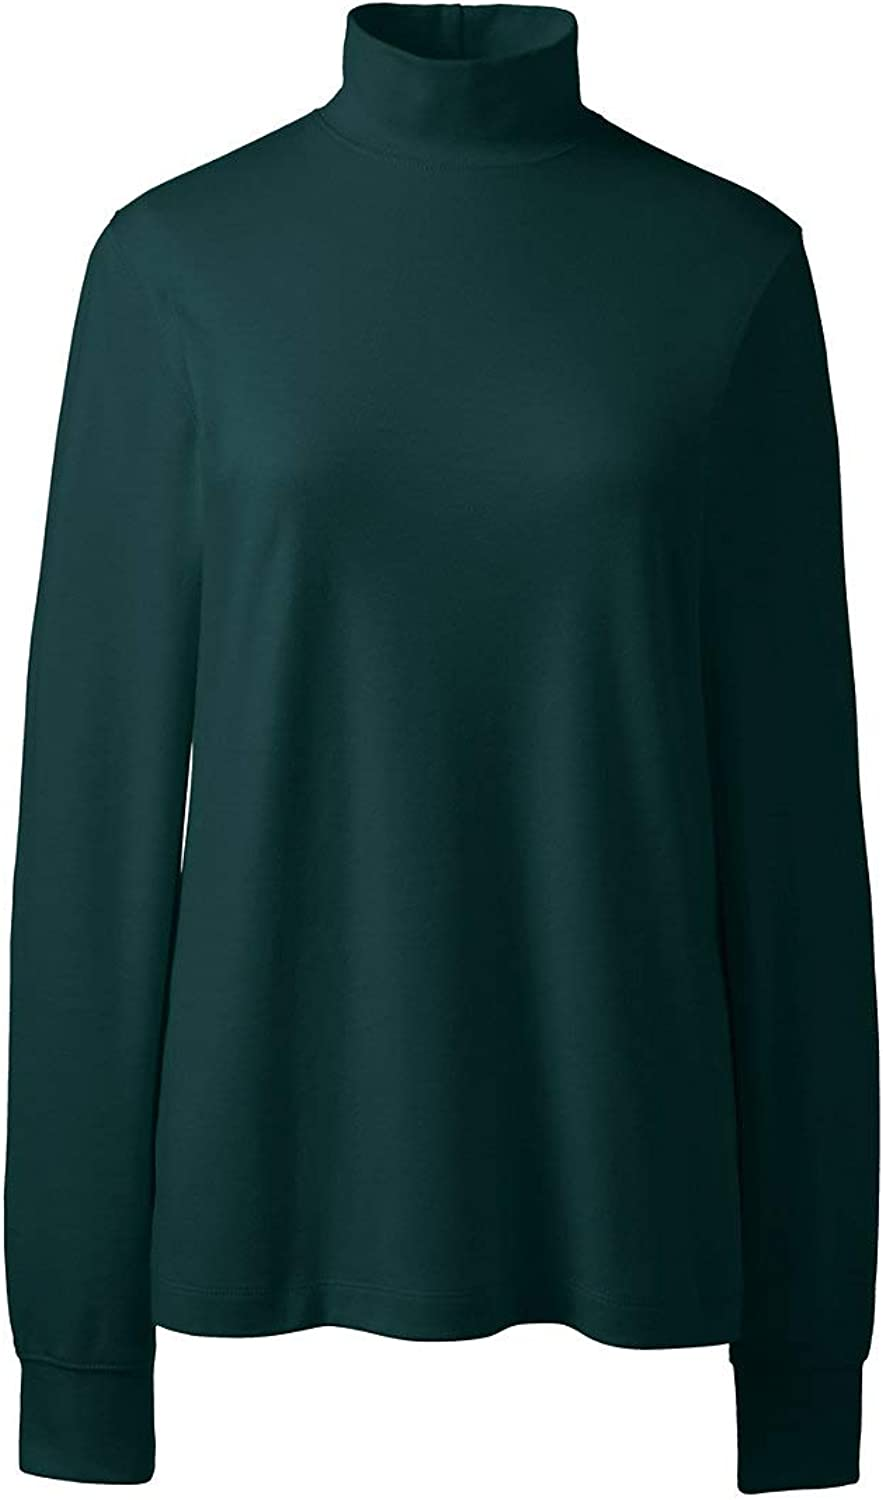 Lands' End Women's Relaxed Cotton Mock Turtleneck